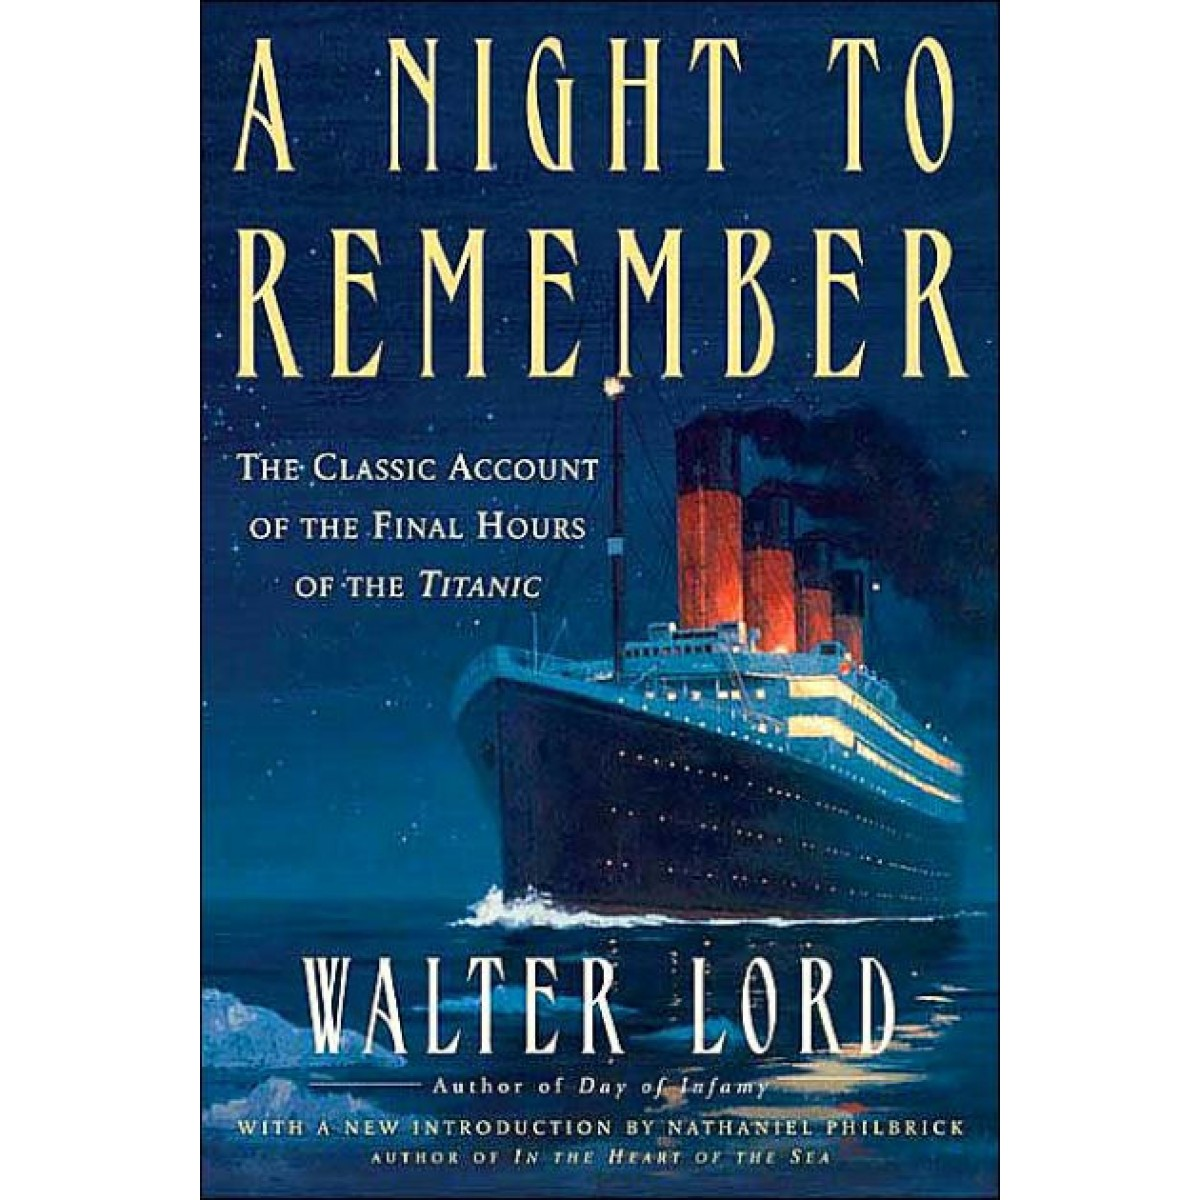 a night to remember by walter lord essay Multiple copies of a night to remember by walter lord a variety of texts dealing with the events on the titanic, including primary and secondary source material - or - access to computer/internet.